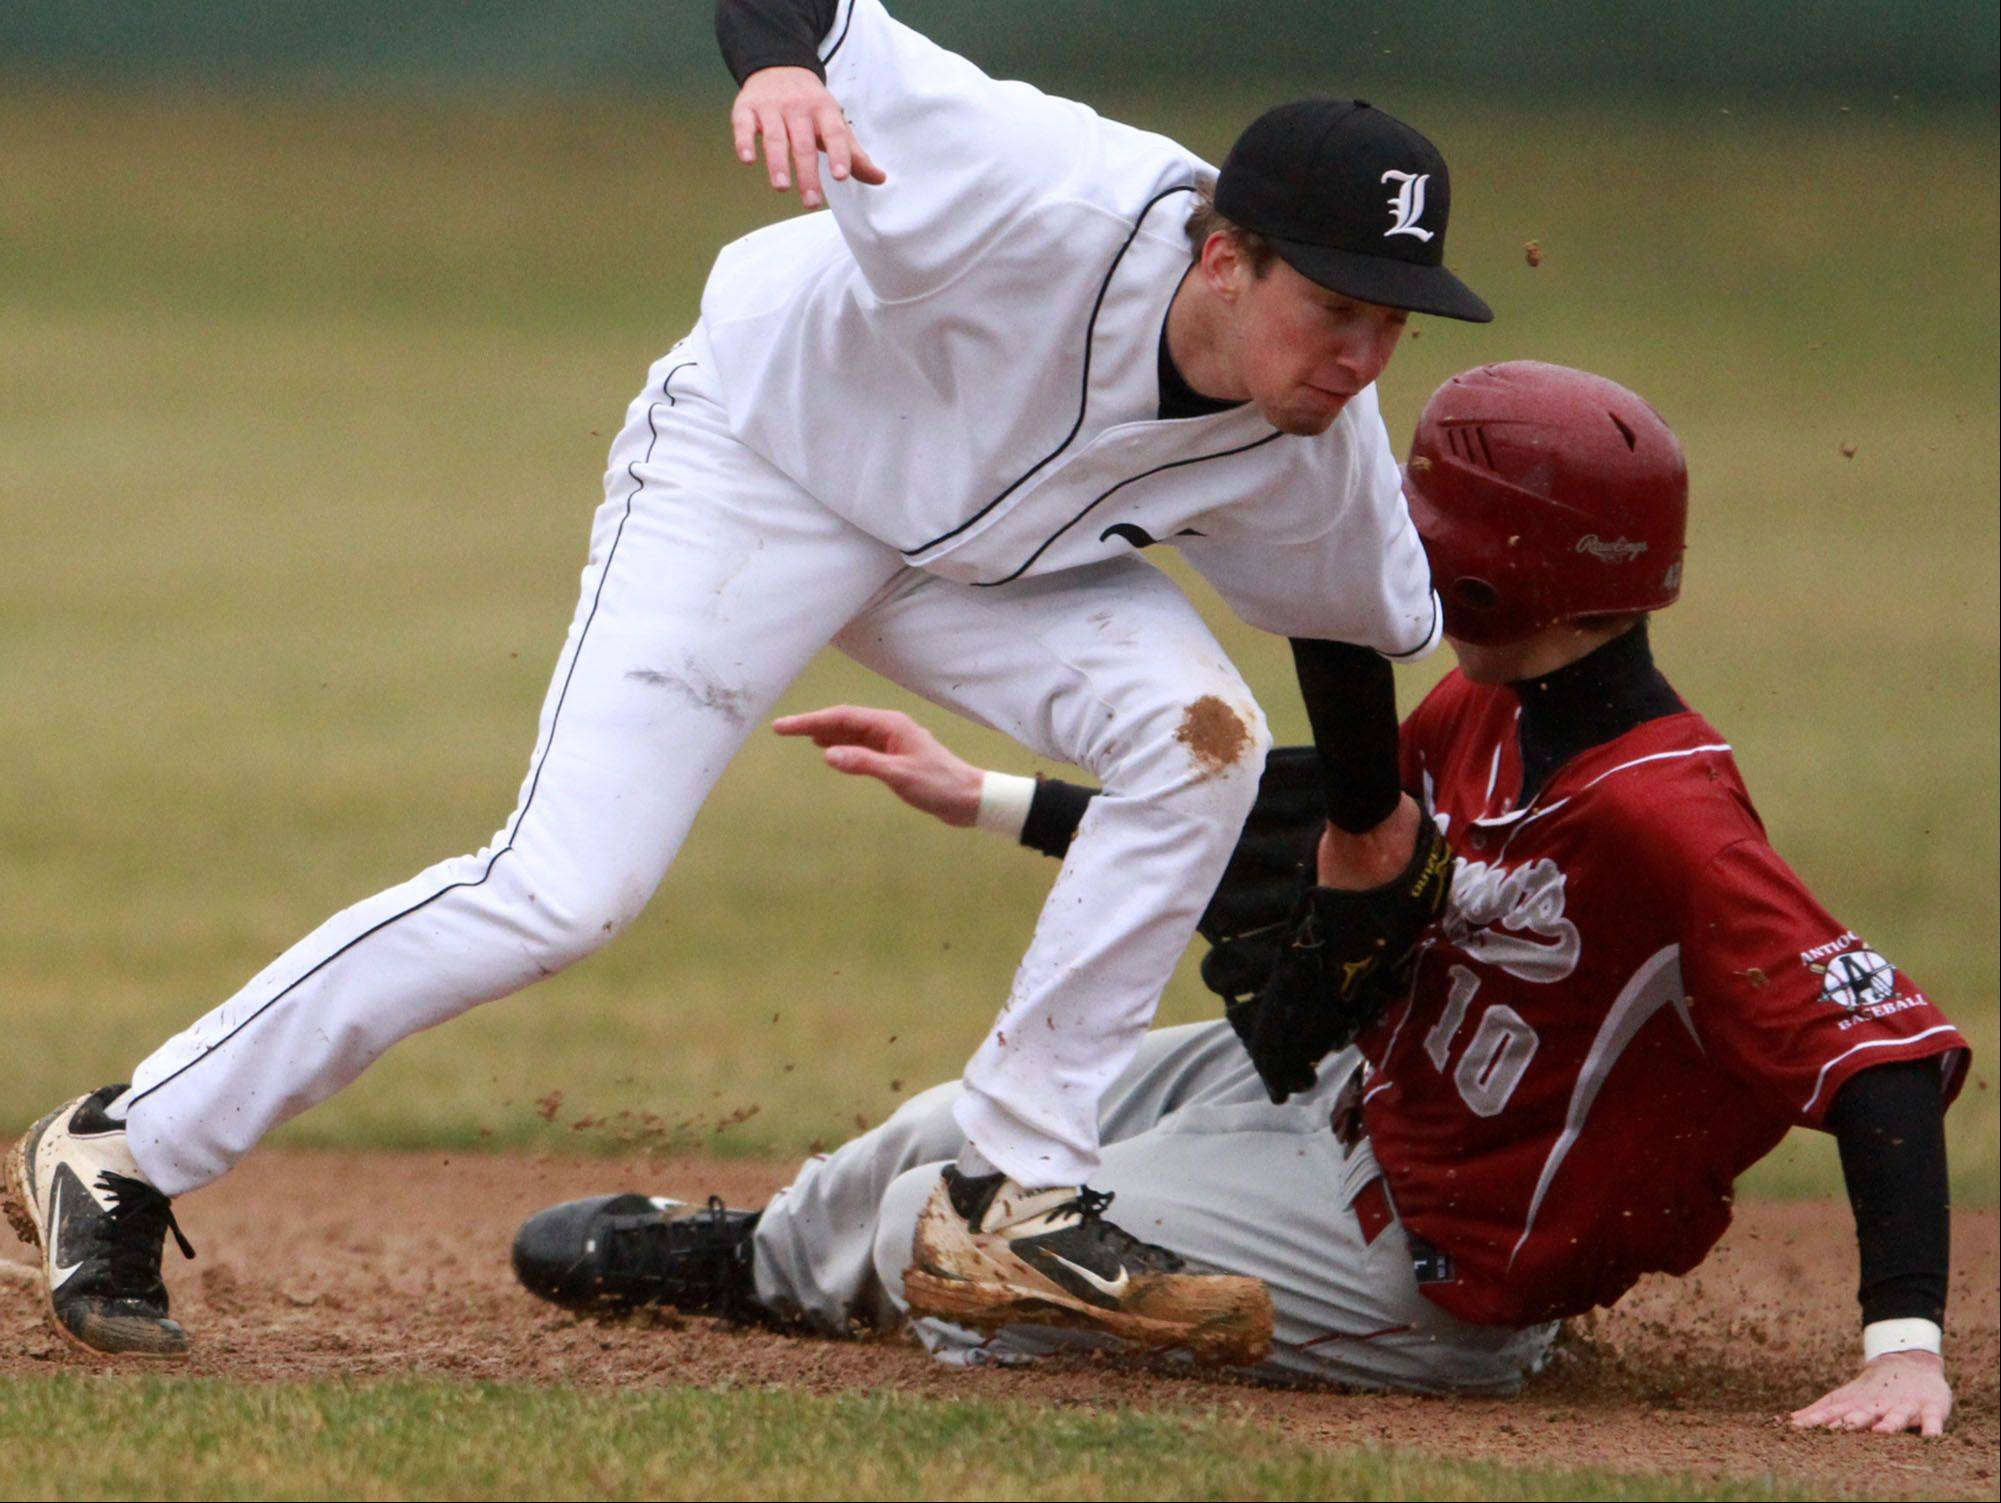 Antioch's Mitch Everett slides into second base as Libertyville shortstop Jimmy Govern misses the tag Friday in Libertyville.